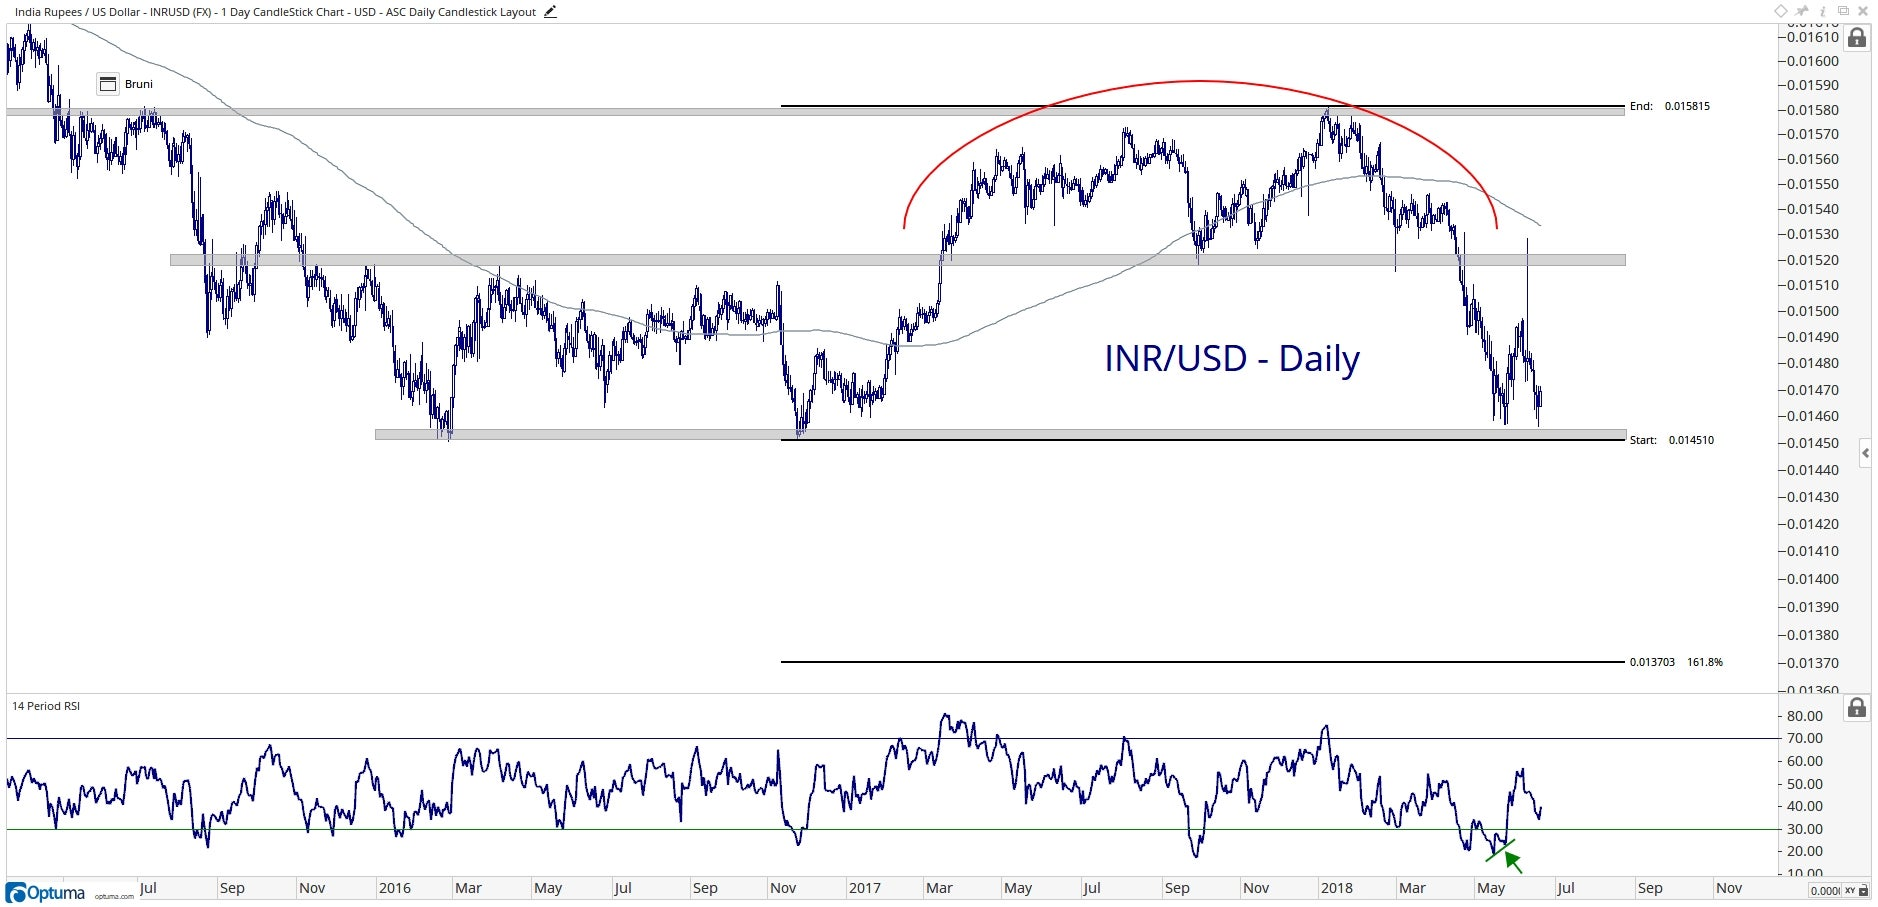 Chart showing the performance of the Indian rupee vs. the U.S. dollar